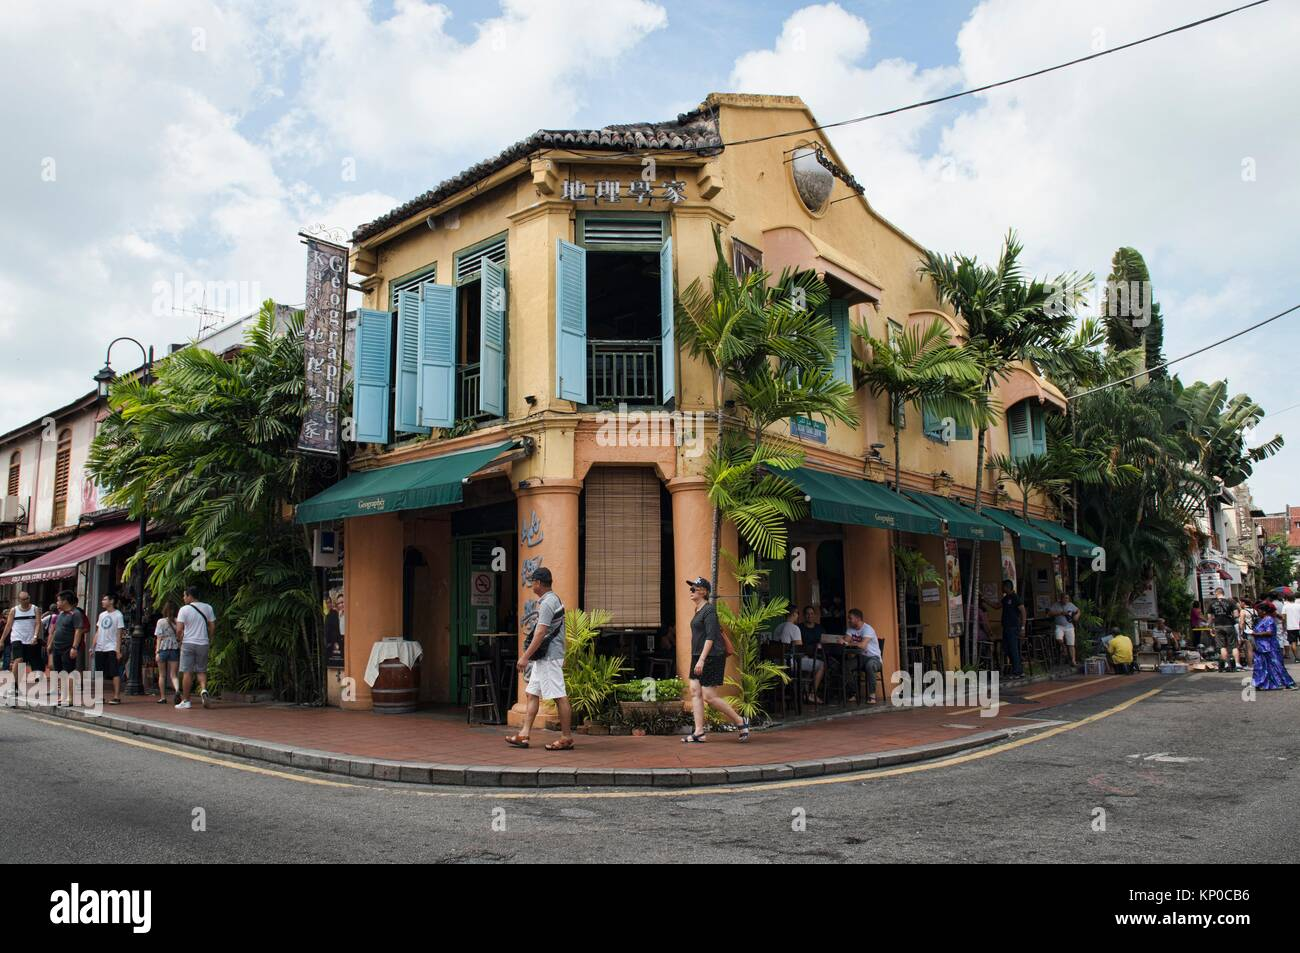 Colonial architecture on Jonker Street, Malacca, Malaysia. - Stock Image